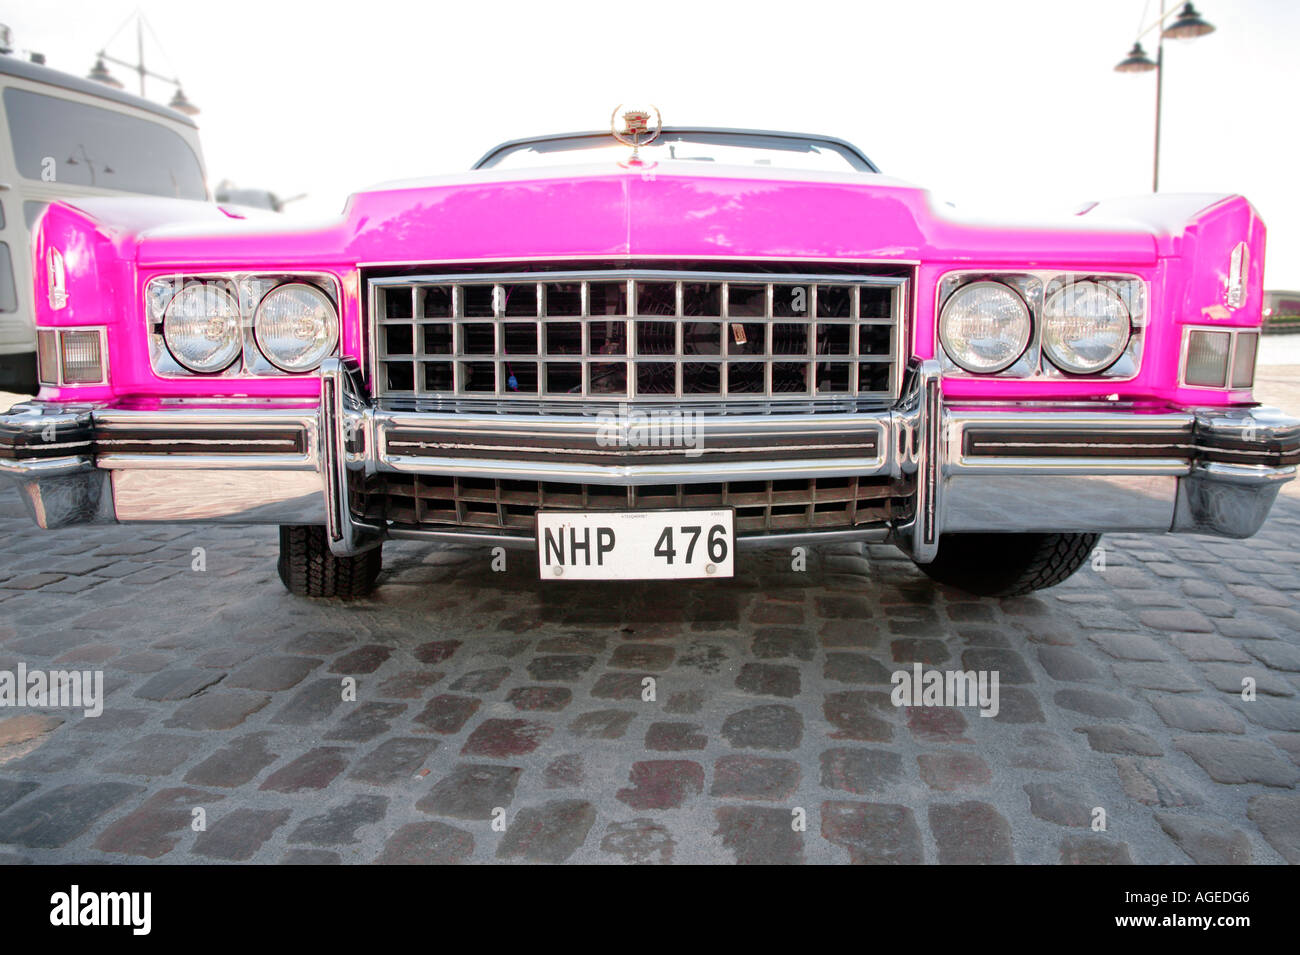 Custom Cadillac Stock Photos Images Alamy 1951 Fleetwood 60 Special Pink Front View With Swedish License Plate Image